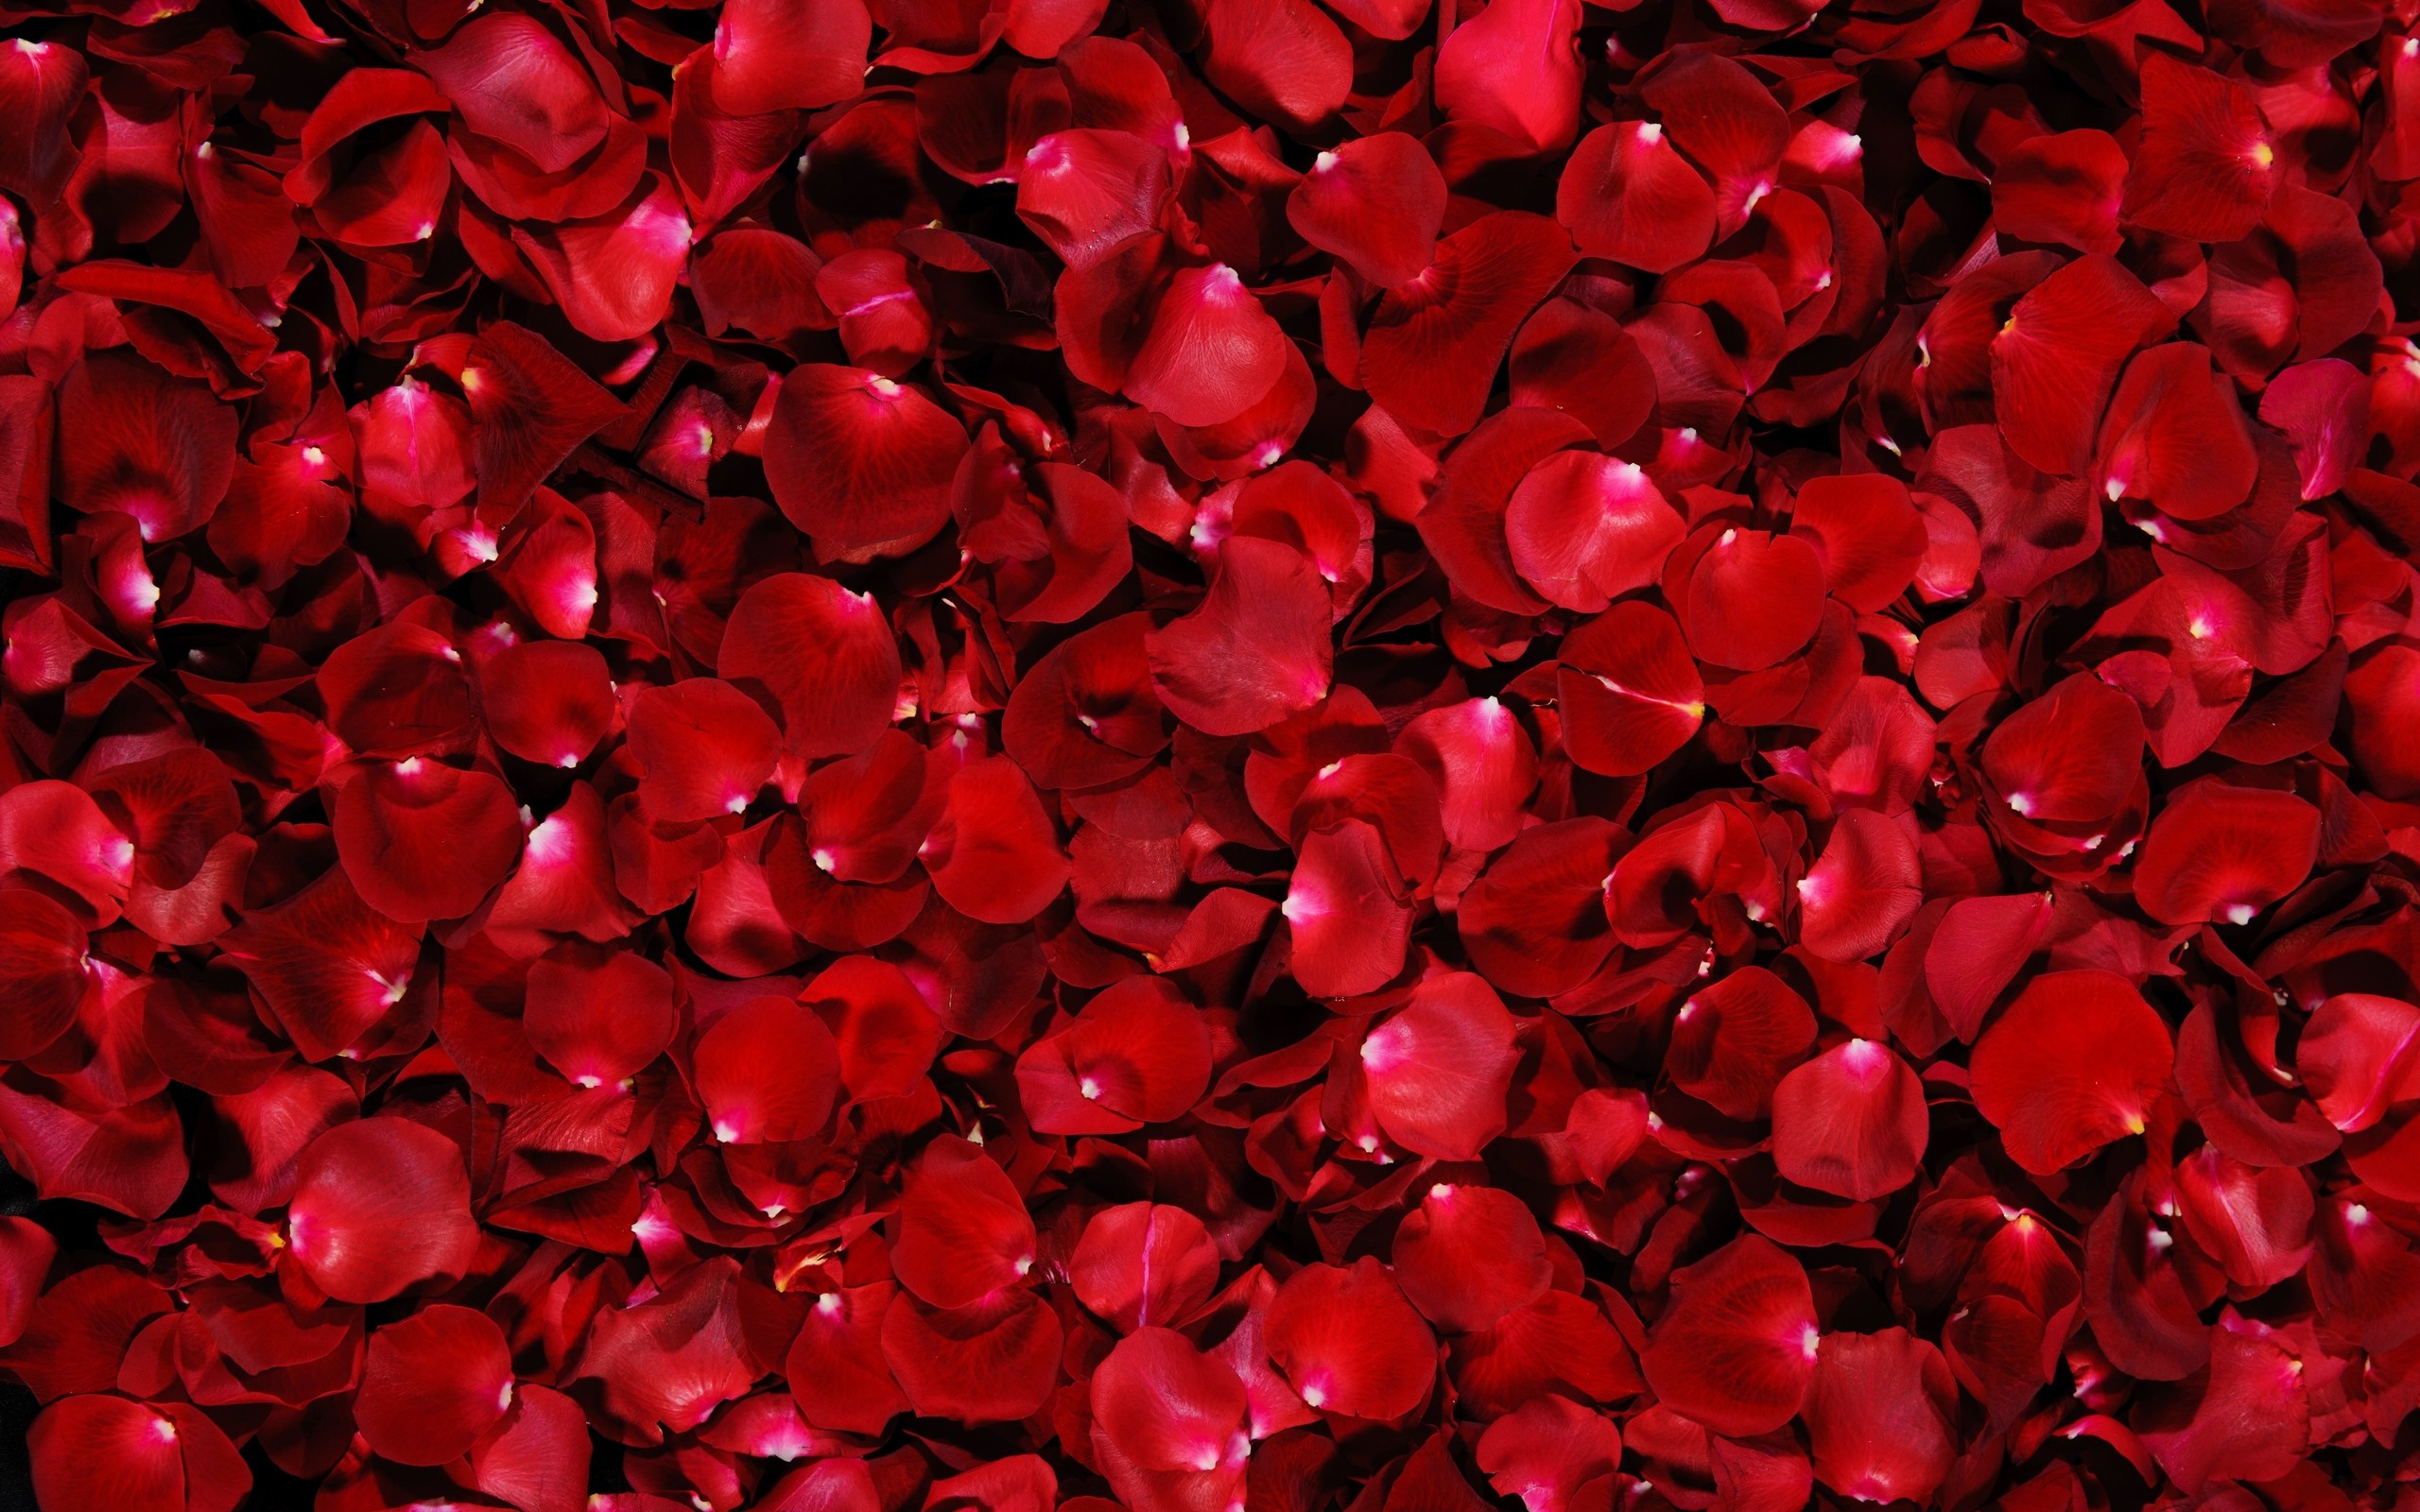 2560x1600 rings-and-red-rose-flower-hd-wallpaper-1920x1200- rosepetals-299892 ...